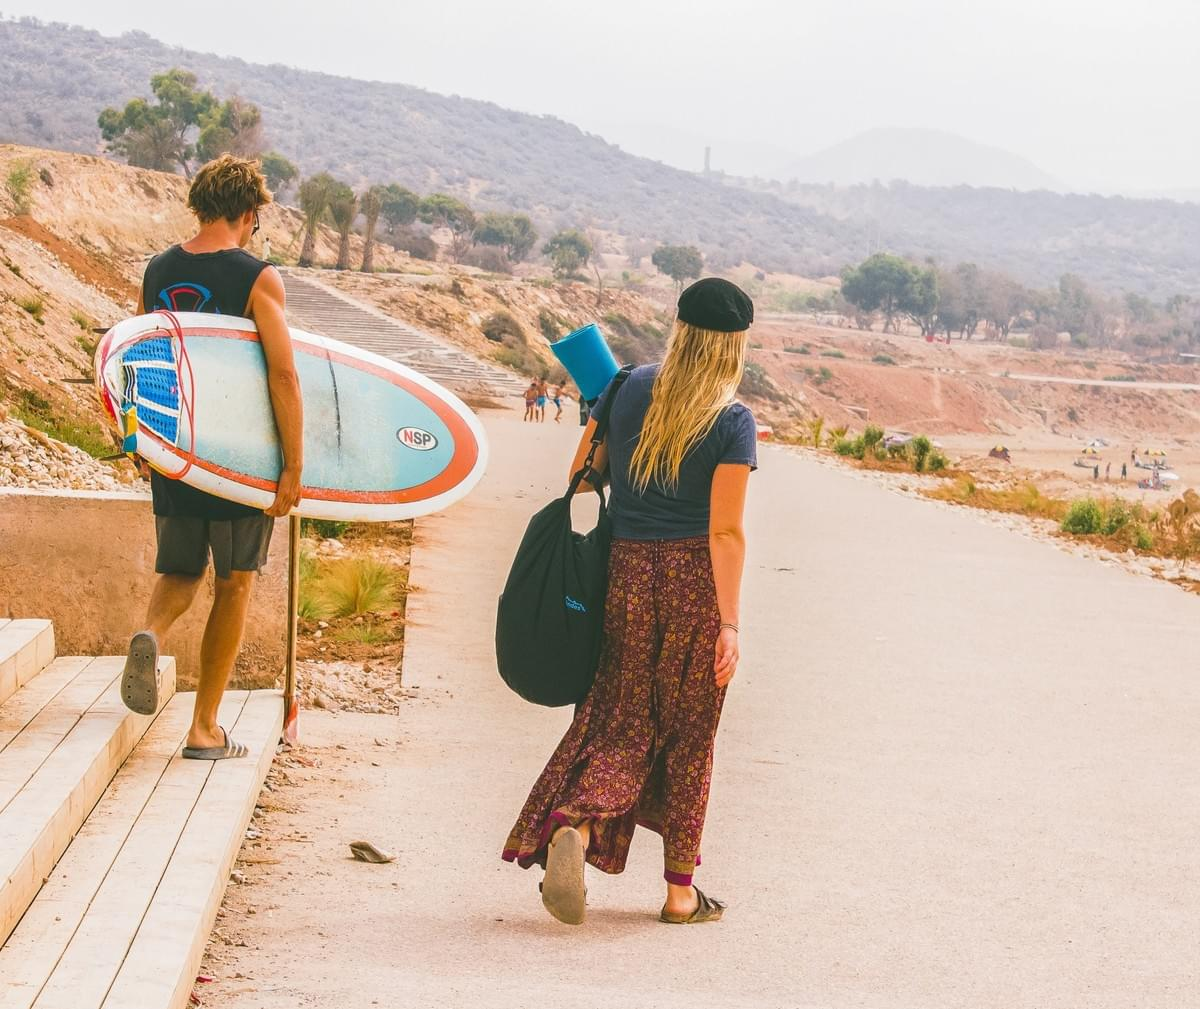 man, woman, surfboard, surf, bag, yoga mat, road, morocco, things to do